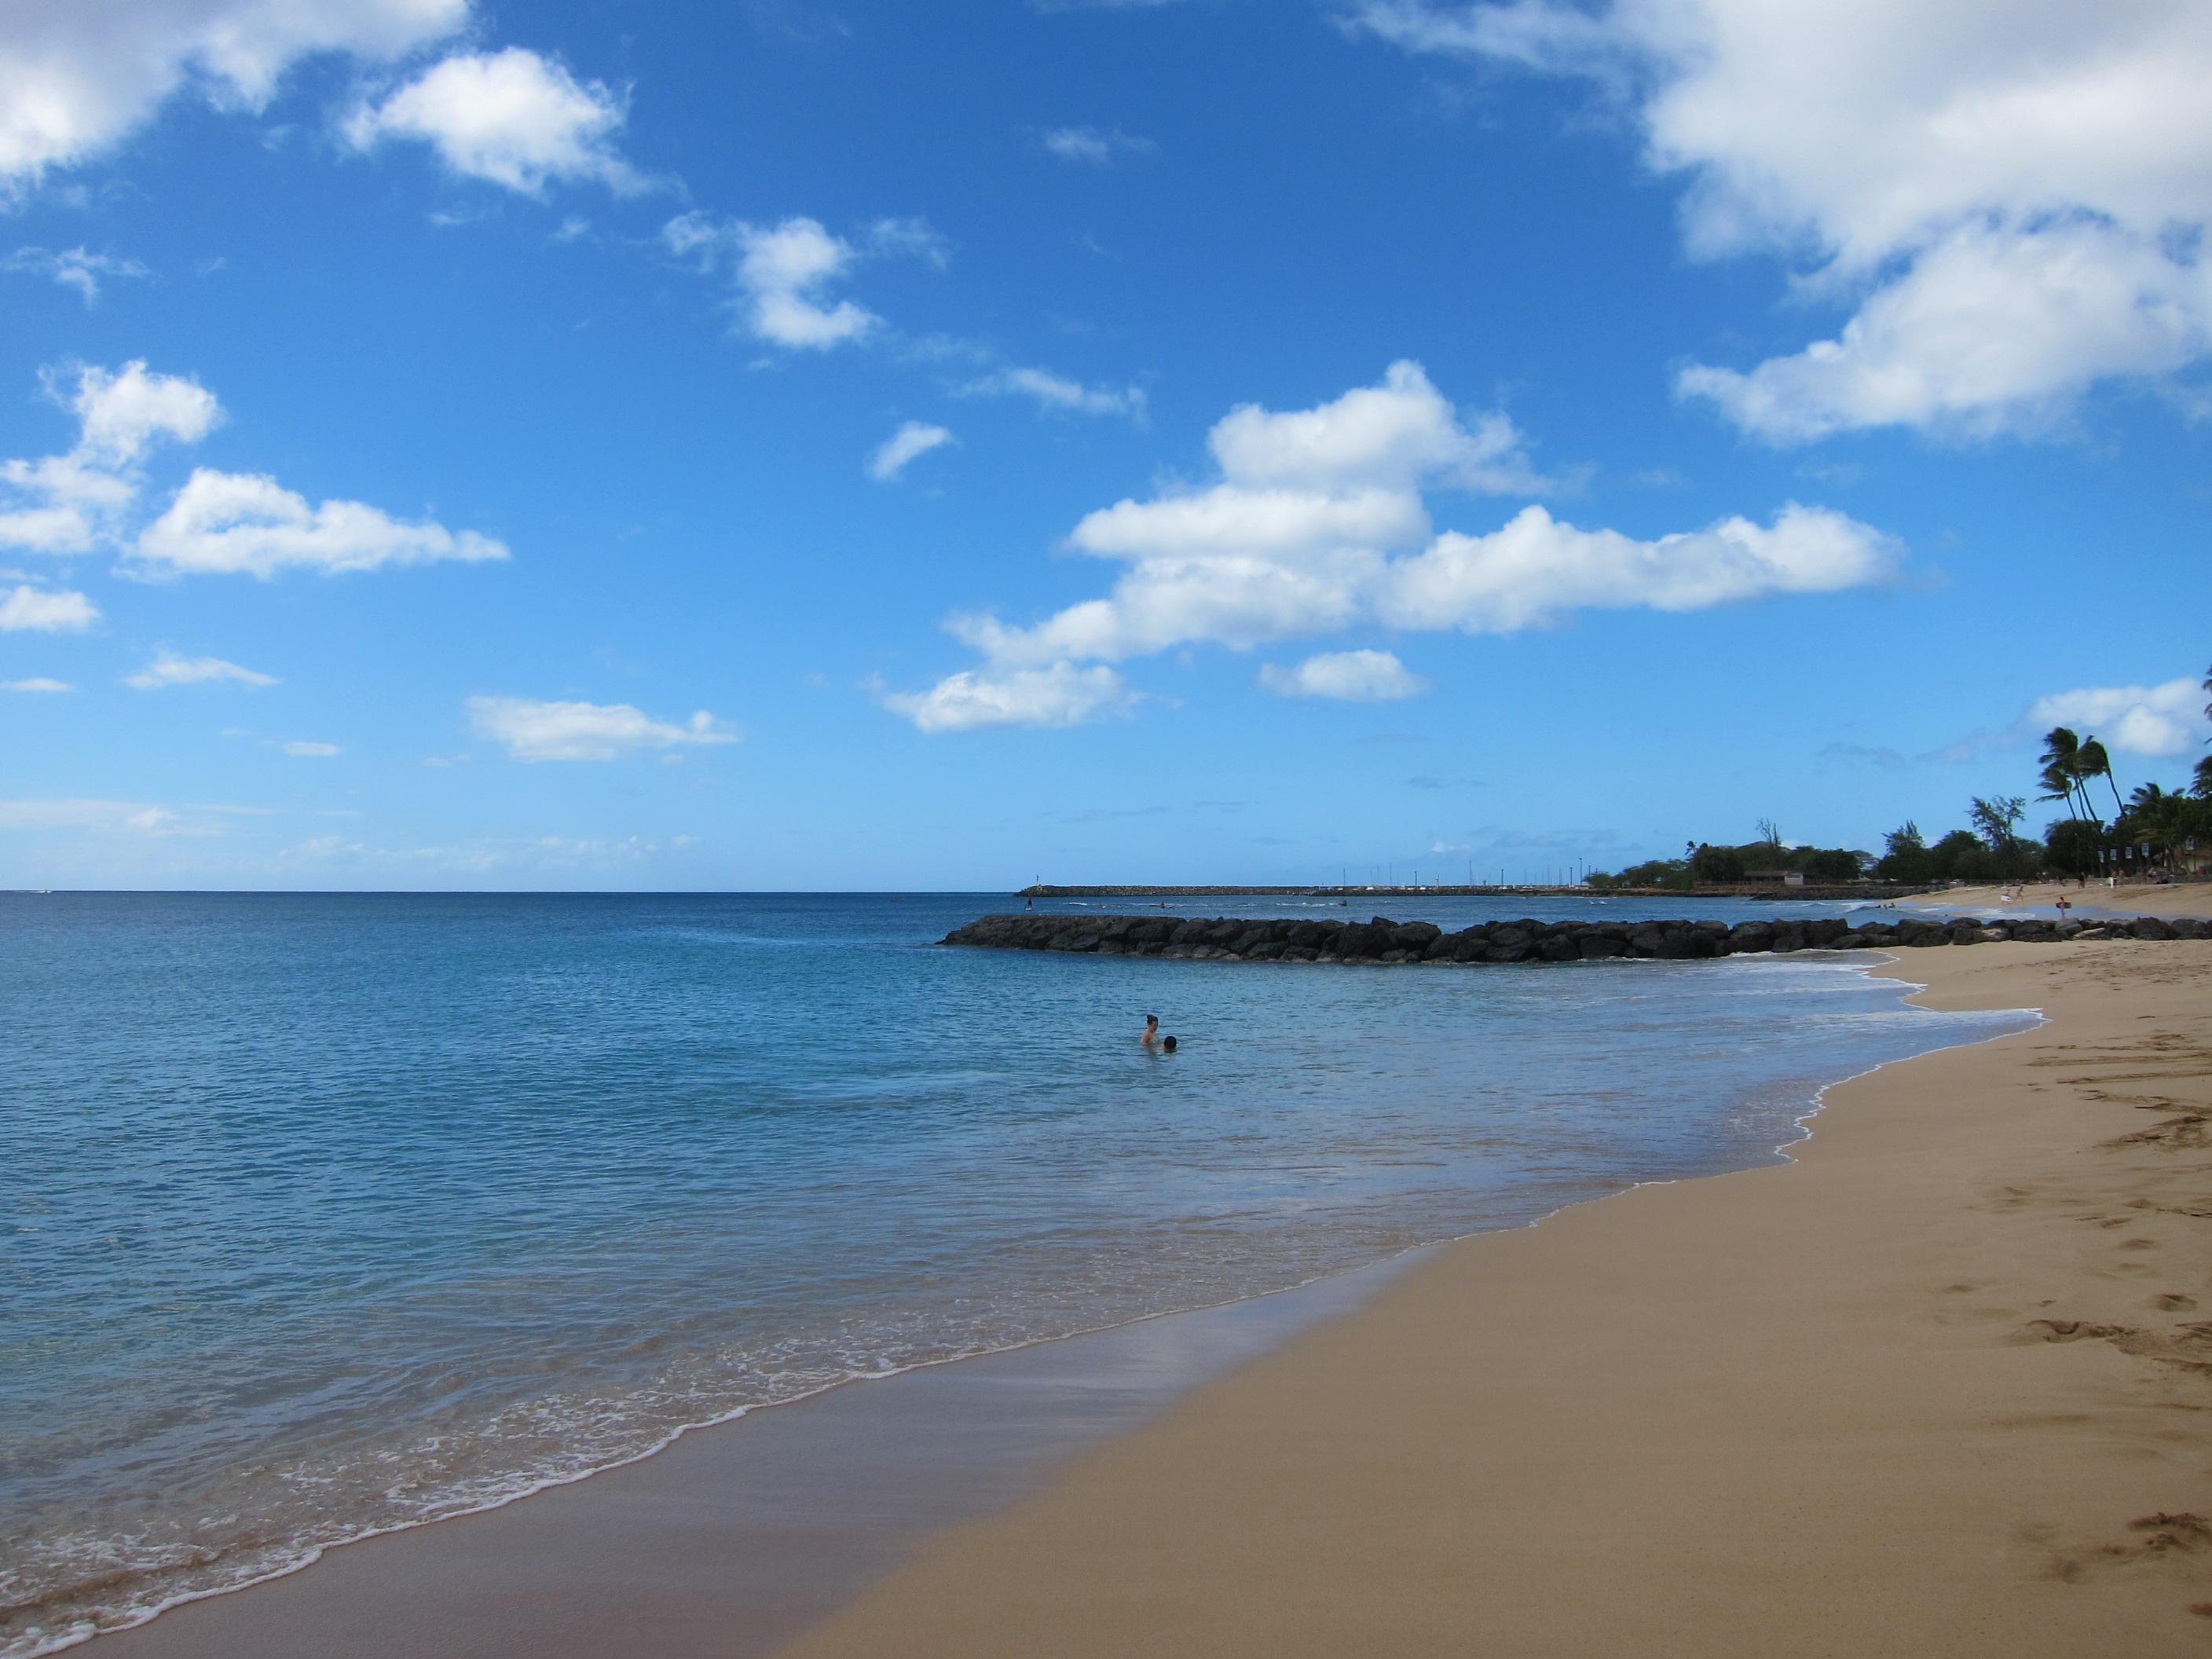 """Oahu Waianae (West) Shore<br/>Photo <a href=""""//creativecommons.org/licences/by-sa/3.0/"""" class=""""cc-small"""" target=""""_blank""""><img typeof=""""foaf:Image"""" class=""""image-style-none"""" src=""""https://i.creativecommons.org/l/by-sa/3.0/80x15.png"""" width=""""80px"""" height=""""15px"""" alt=""""Creative Commons Licence"""" /></a> <a href=""""https://www.flickr.com/photos/63669472@N00/8303353052"""">Eugene Kim</a>"""